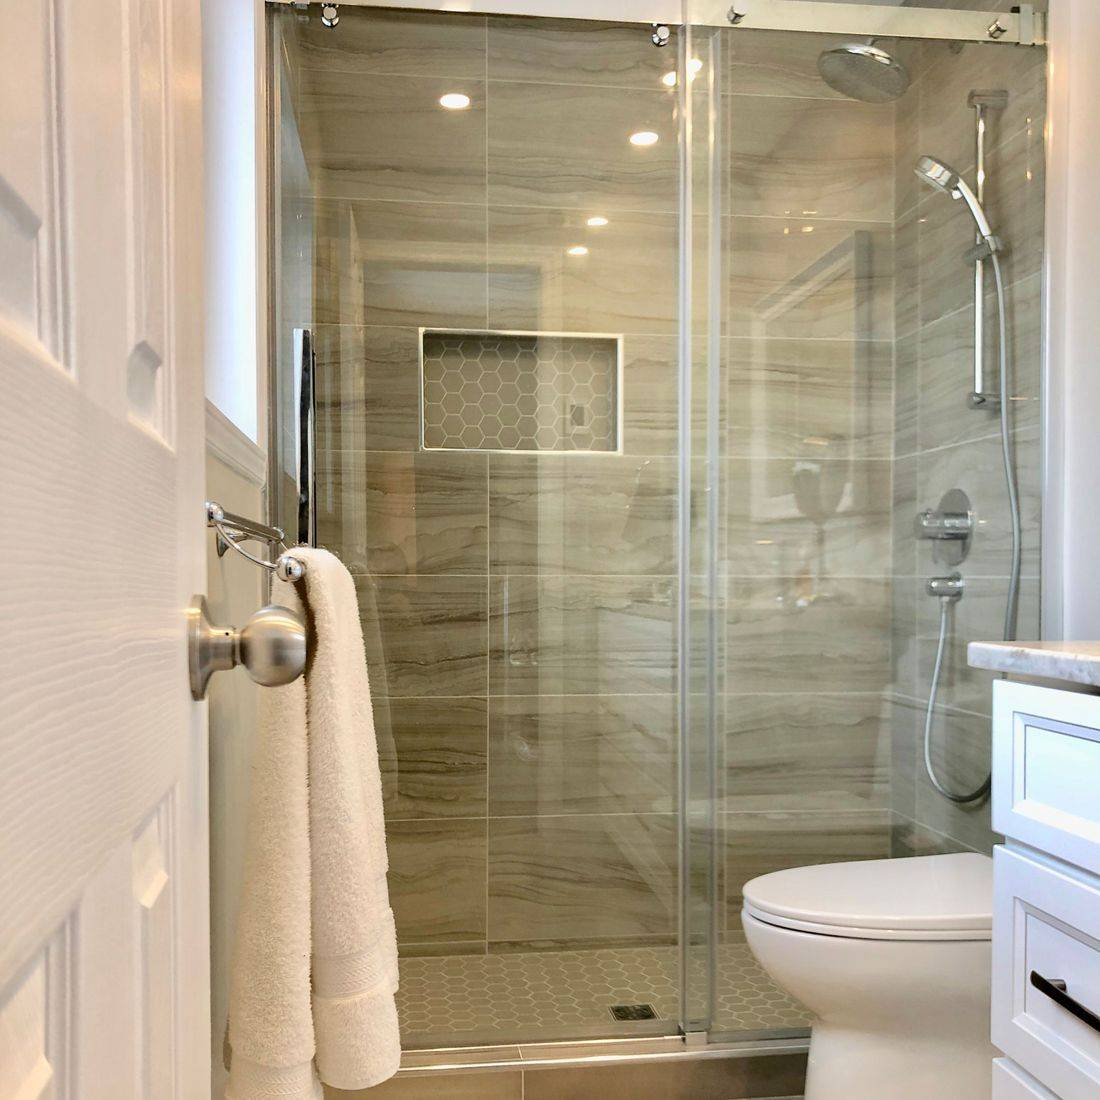 montreal contractors, bathroom renovations, bathroom design, turnkey projects